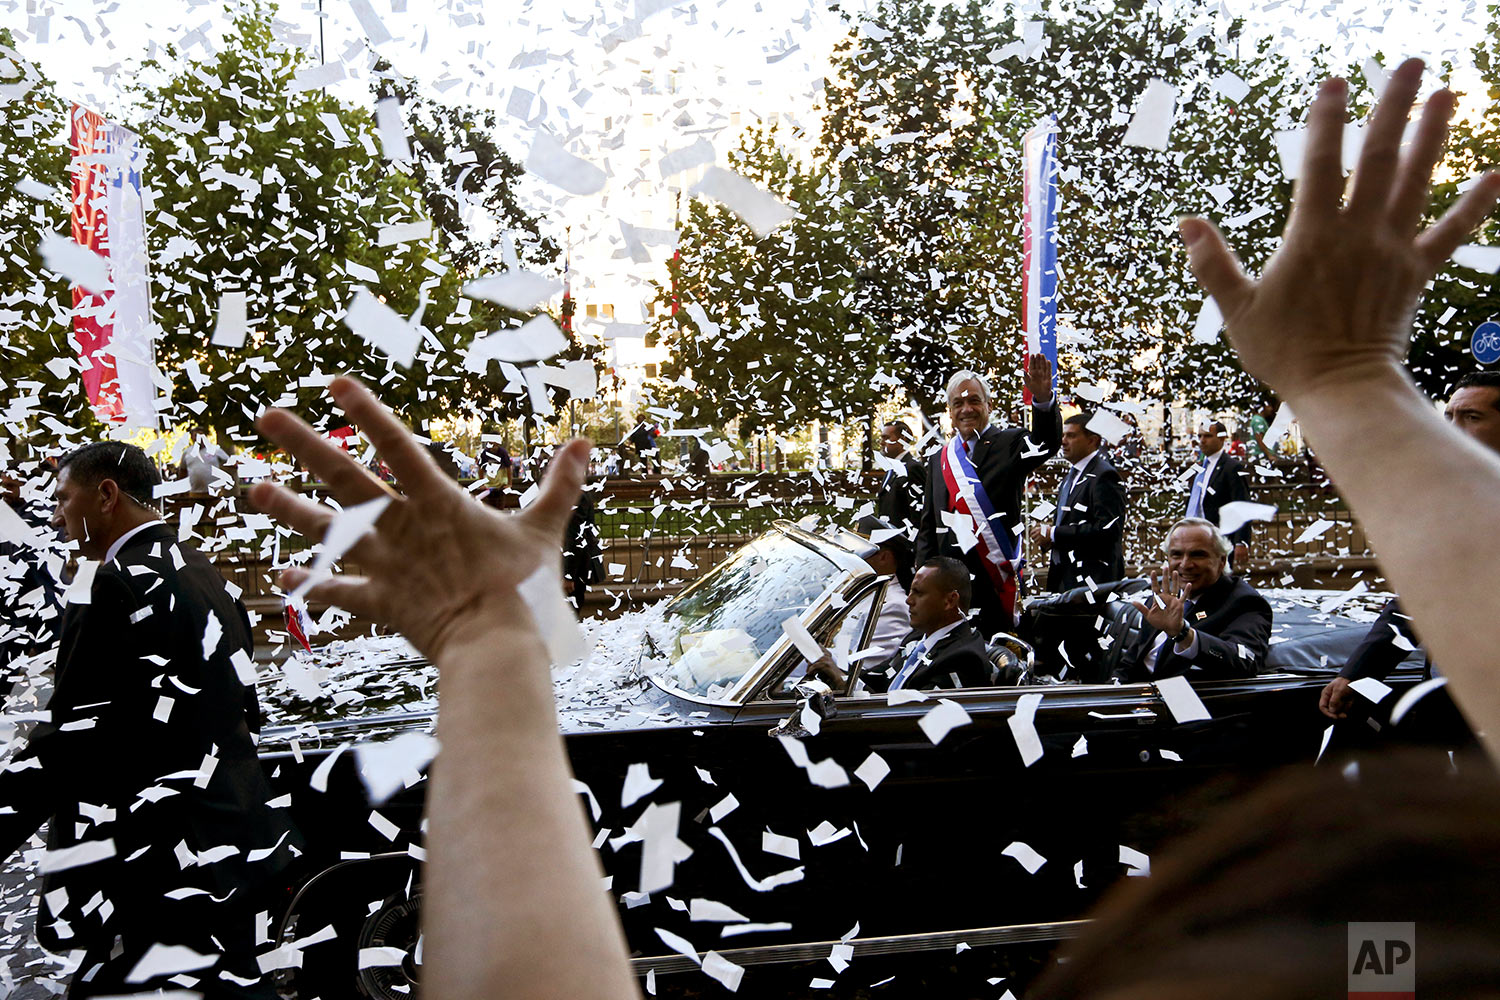 Chile's President Sebastian Pinera waves from under a shower of confetti as he makes his way to La Moneda presidential palace on the day of his inauguration in Santiago, Chile, March 11, 2018. Pinera returned to Chile's presidency, after his first term from 2010 to 2014. (AP Photo/Esteban Felix)